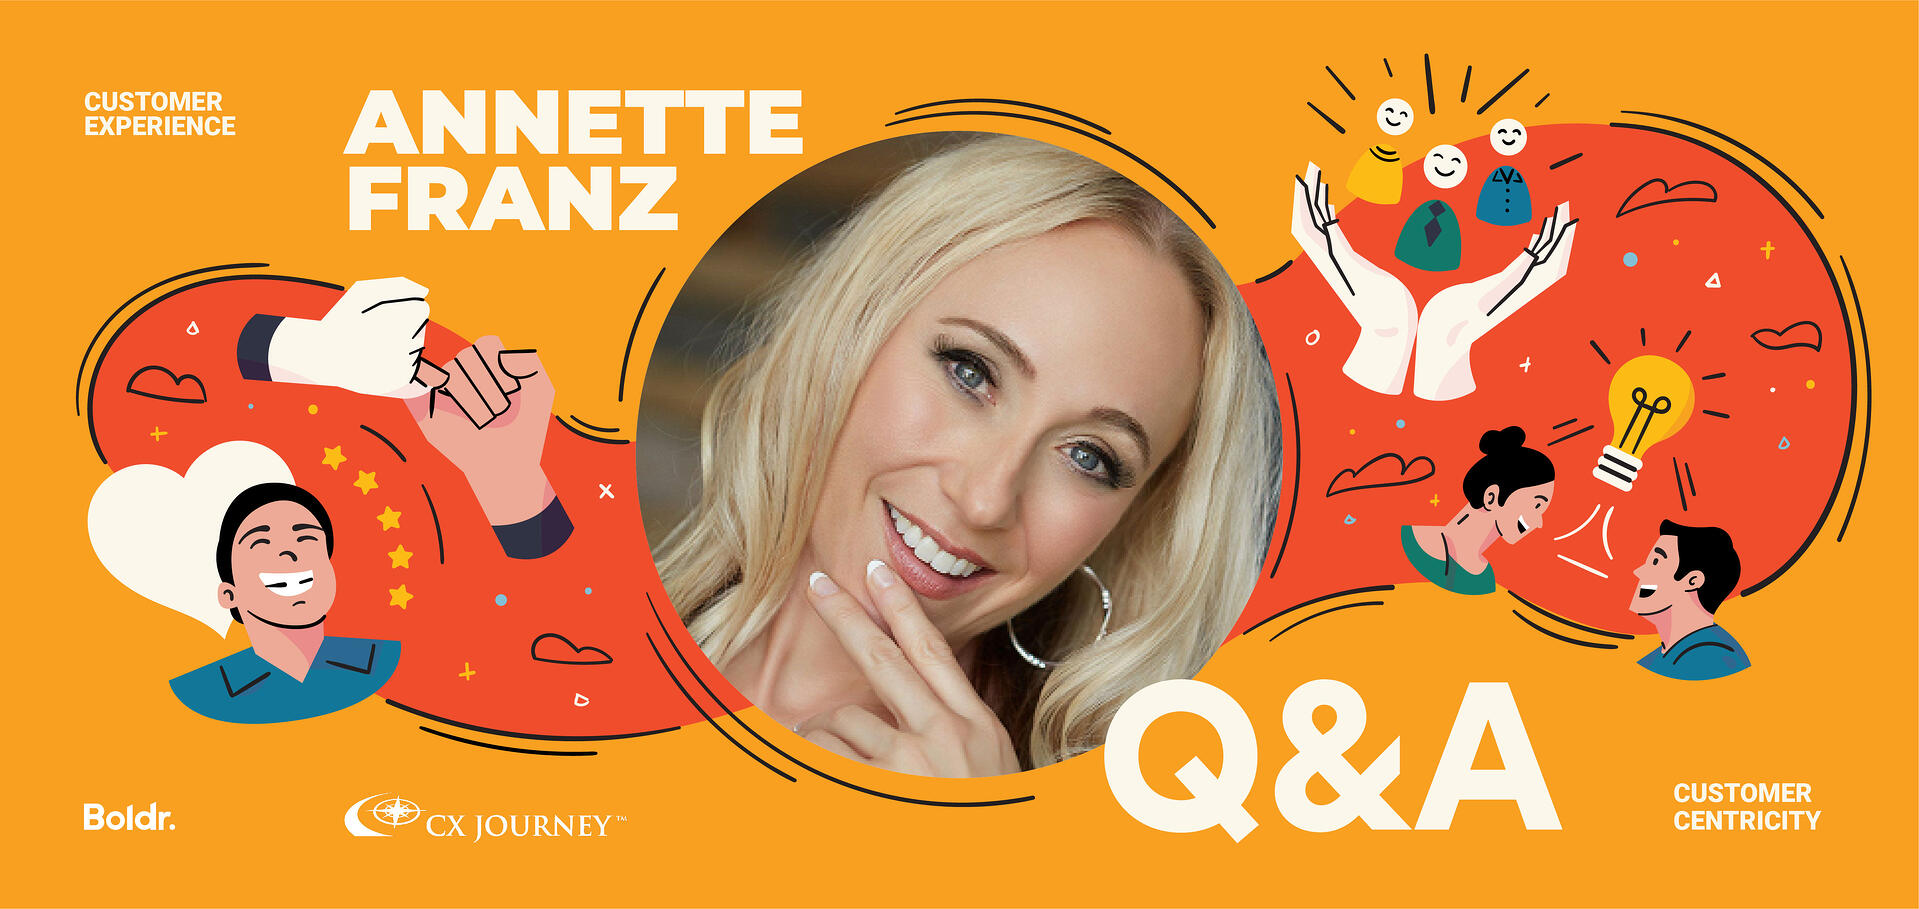 Q&A with Annette Franz: Becoming a Customer-Centric Business